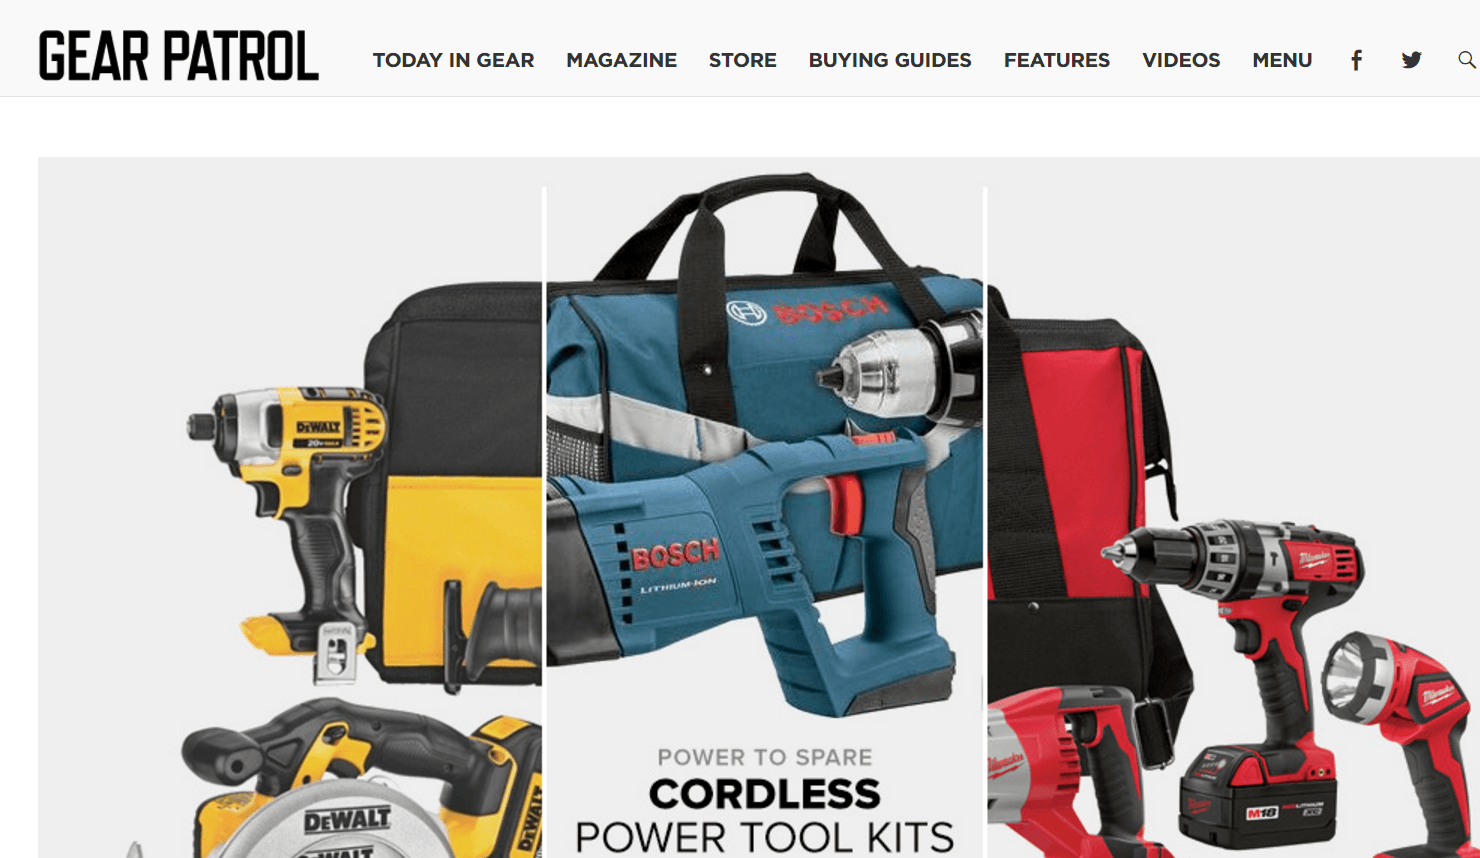 A snapshot of GearPatrol's website...